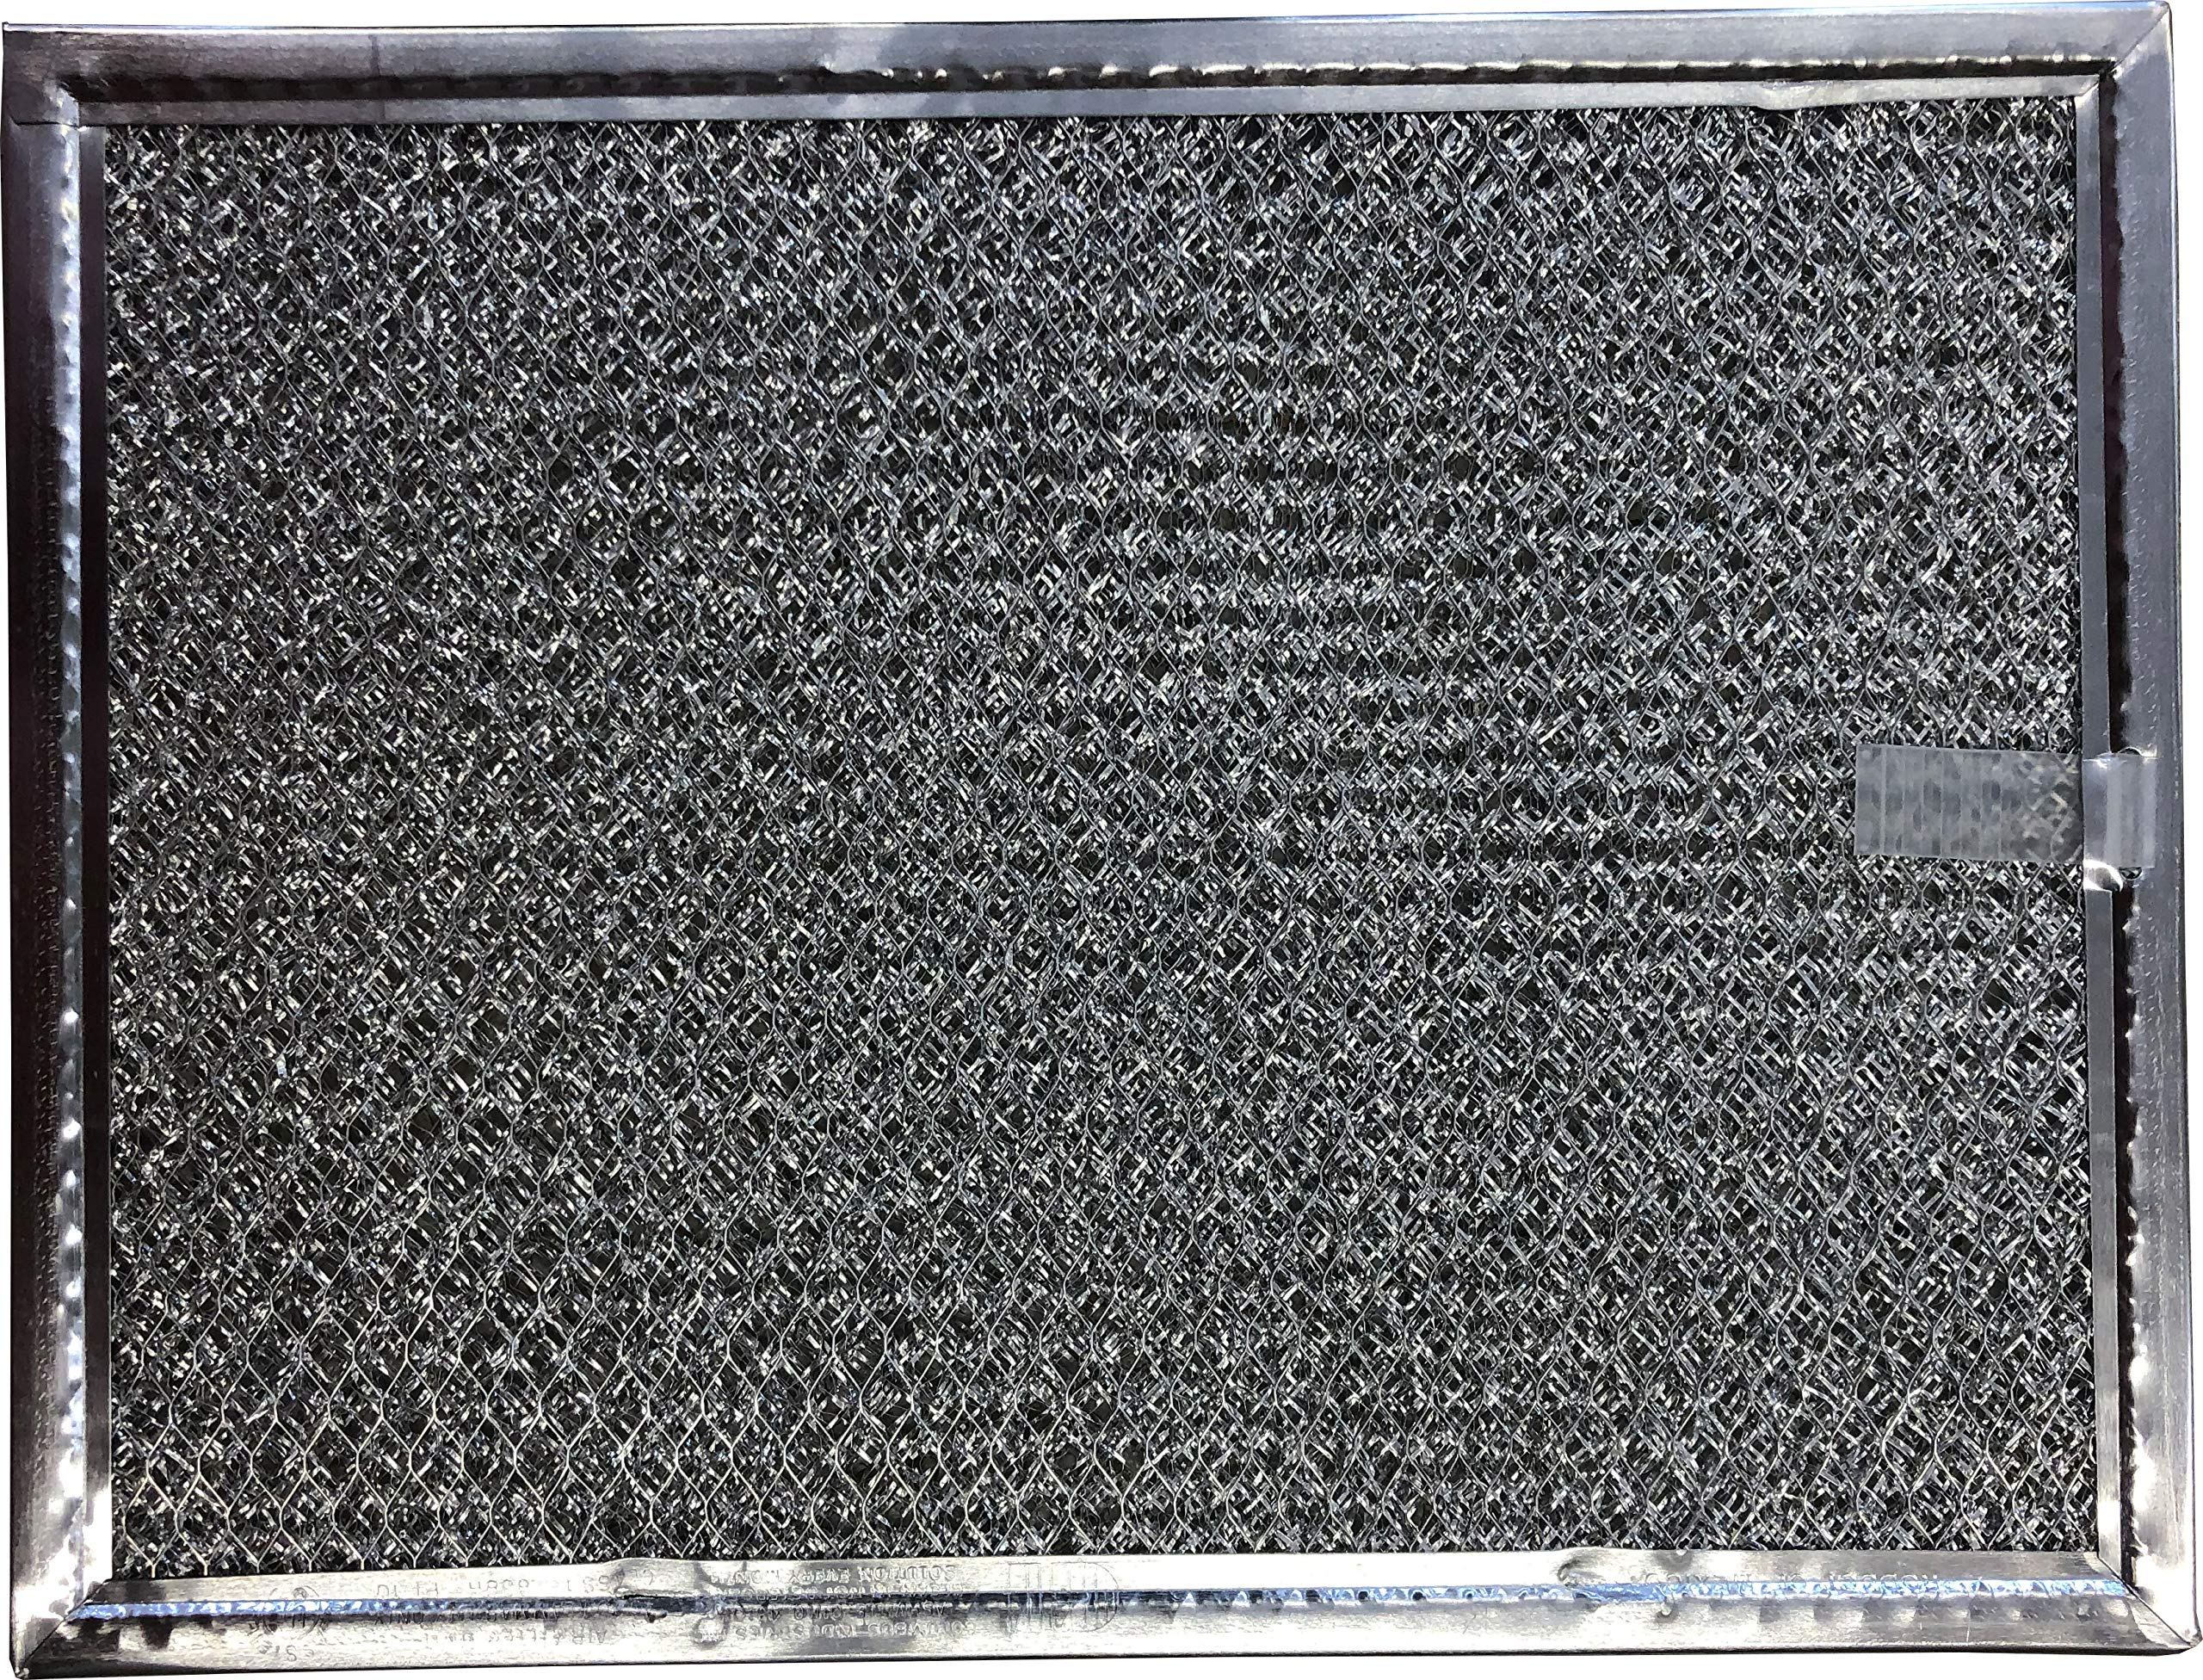 Replacement Aluminum Range Filter Compatible With Samsung DE63 00231A,G 8608,RHF0550   5 1/8 x 11 x